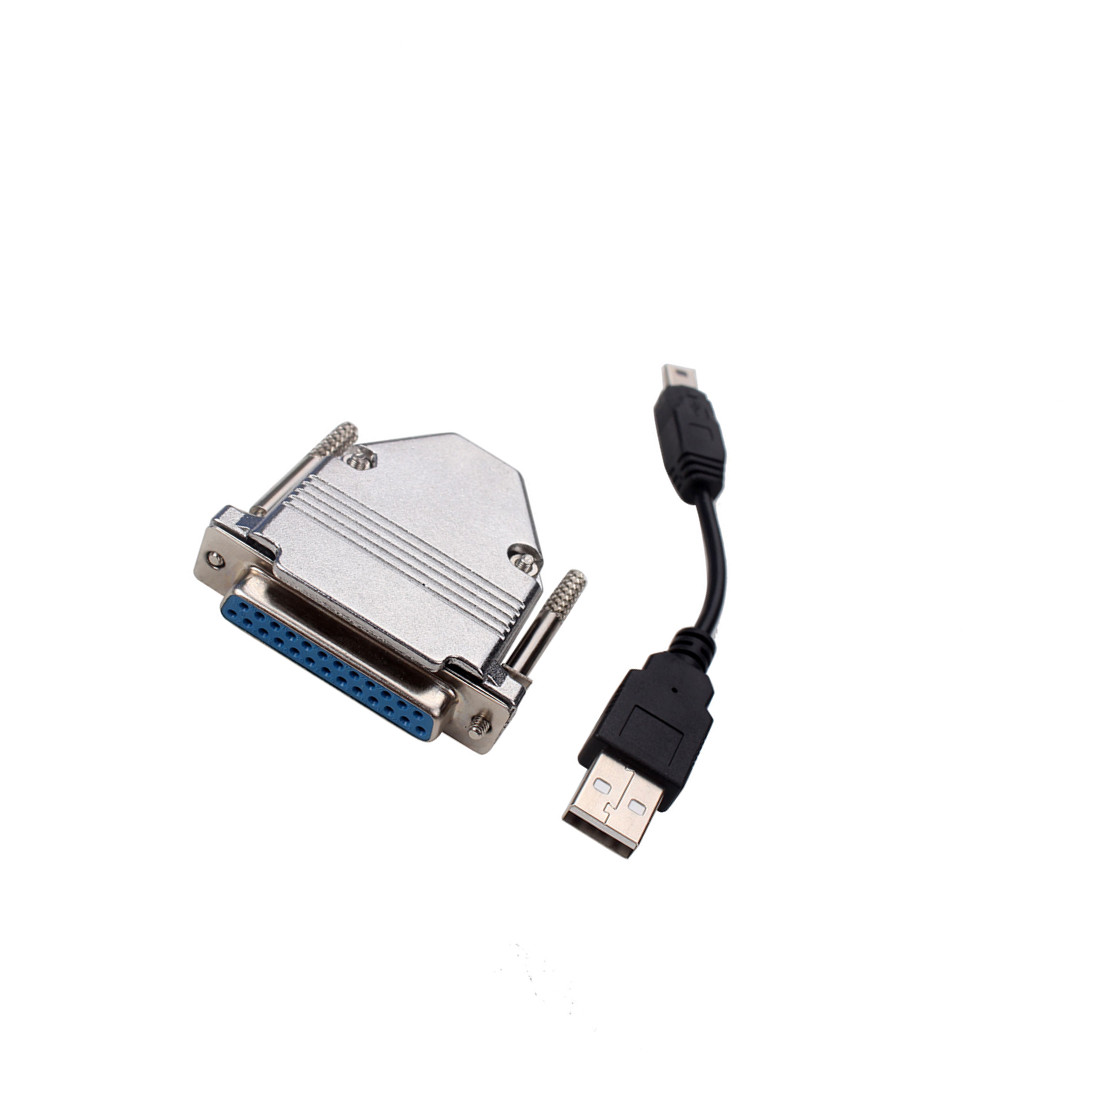 new usb to parallel adapter usb cnc controller for mach3 uc100 ebay